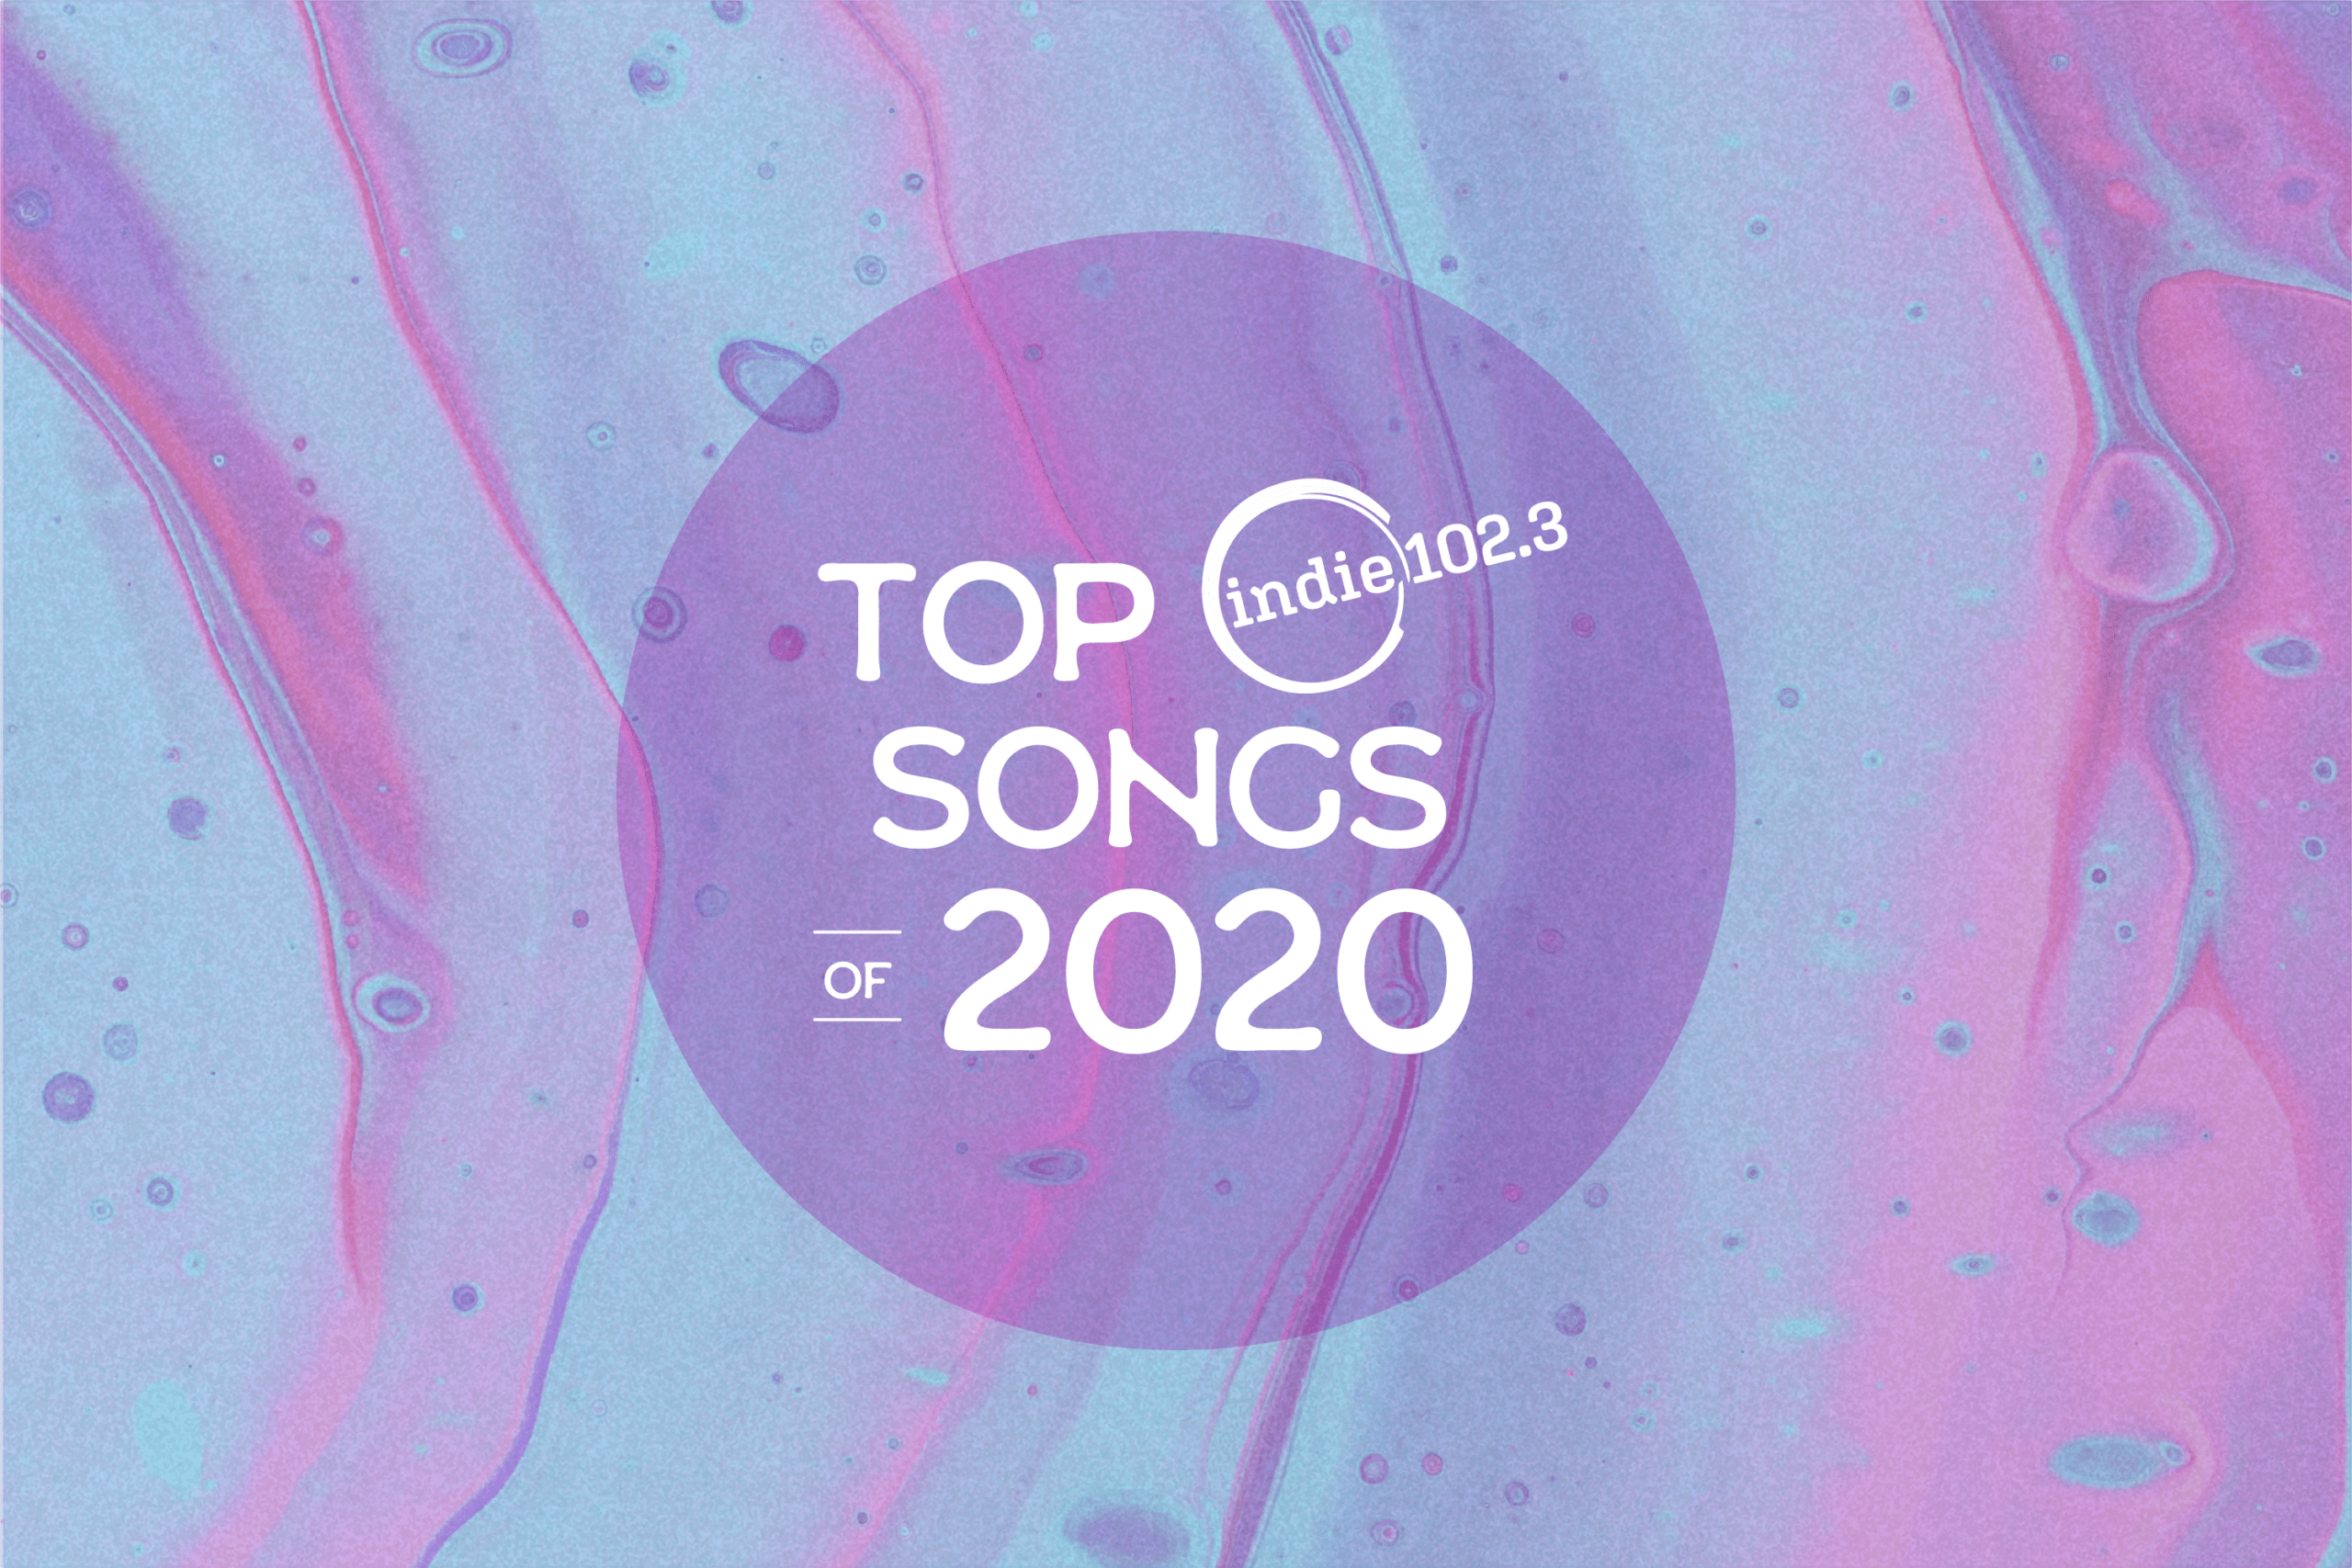 Top Songs of 2020